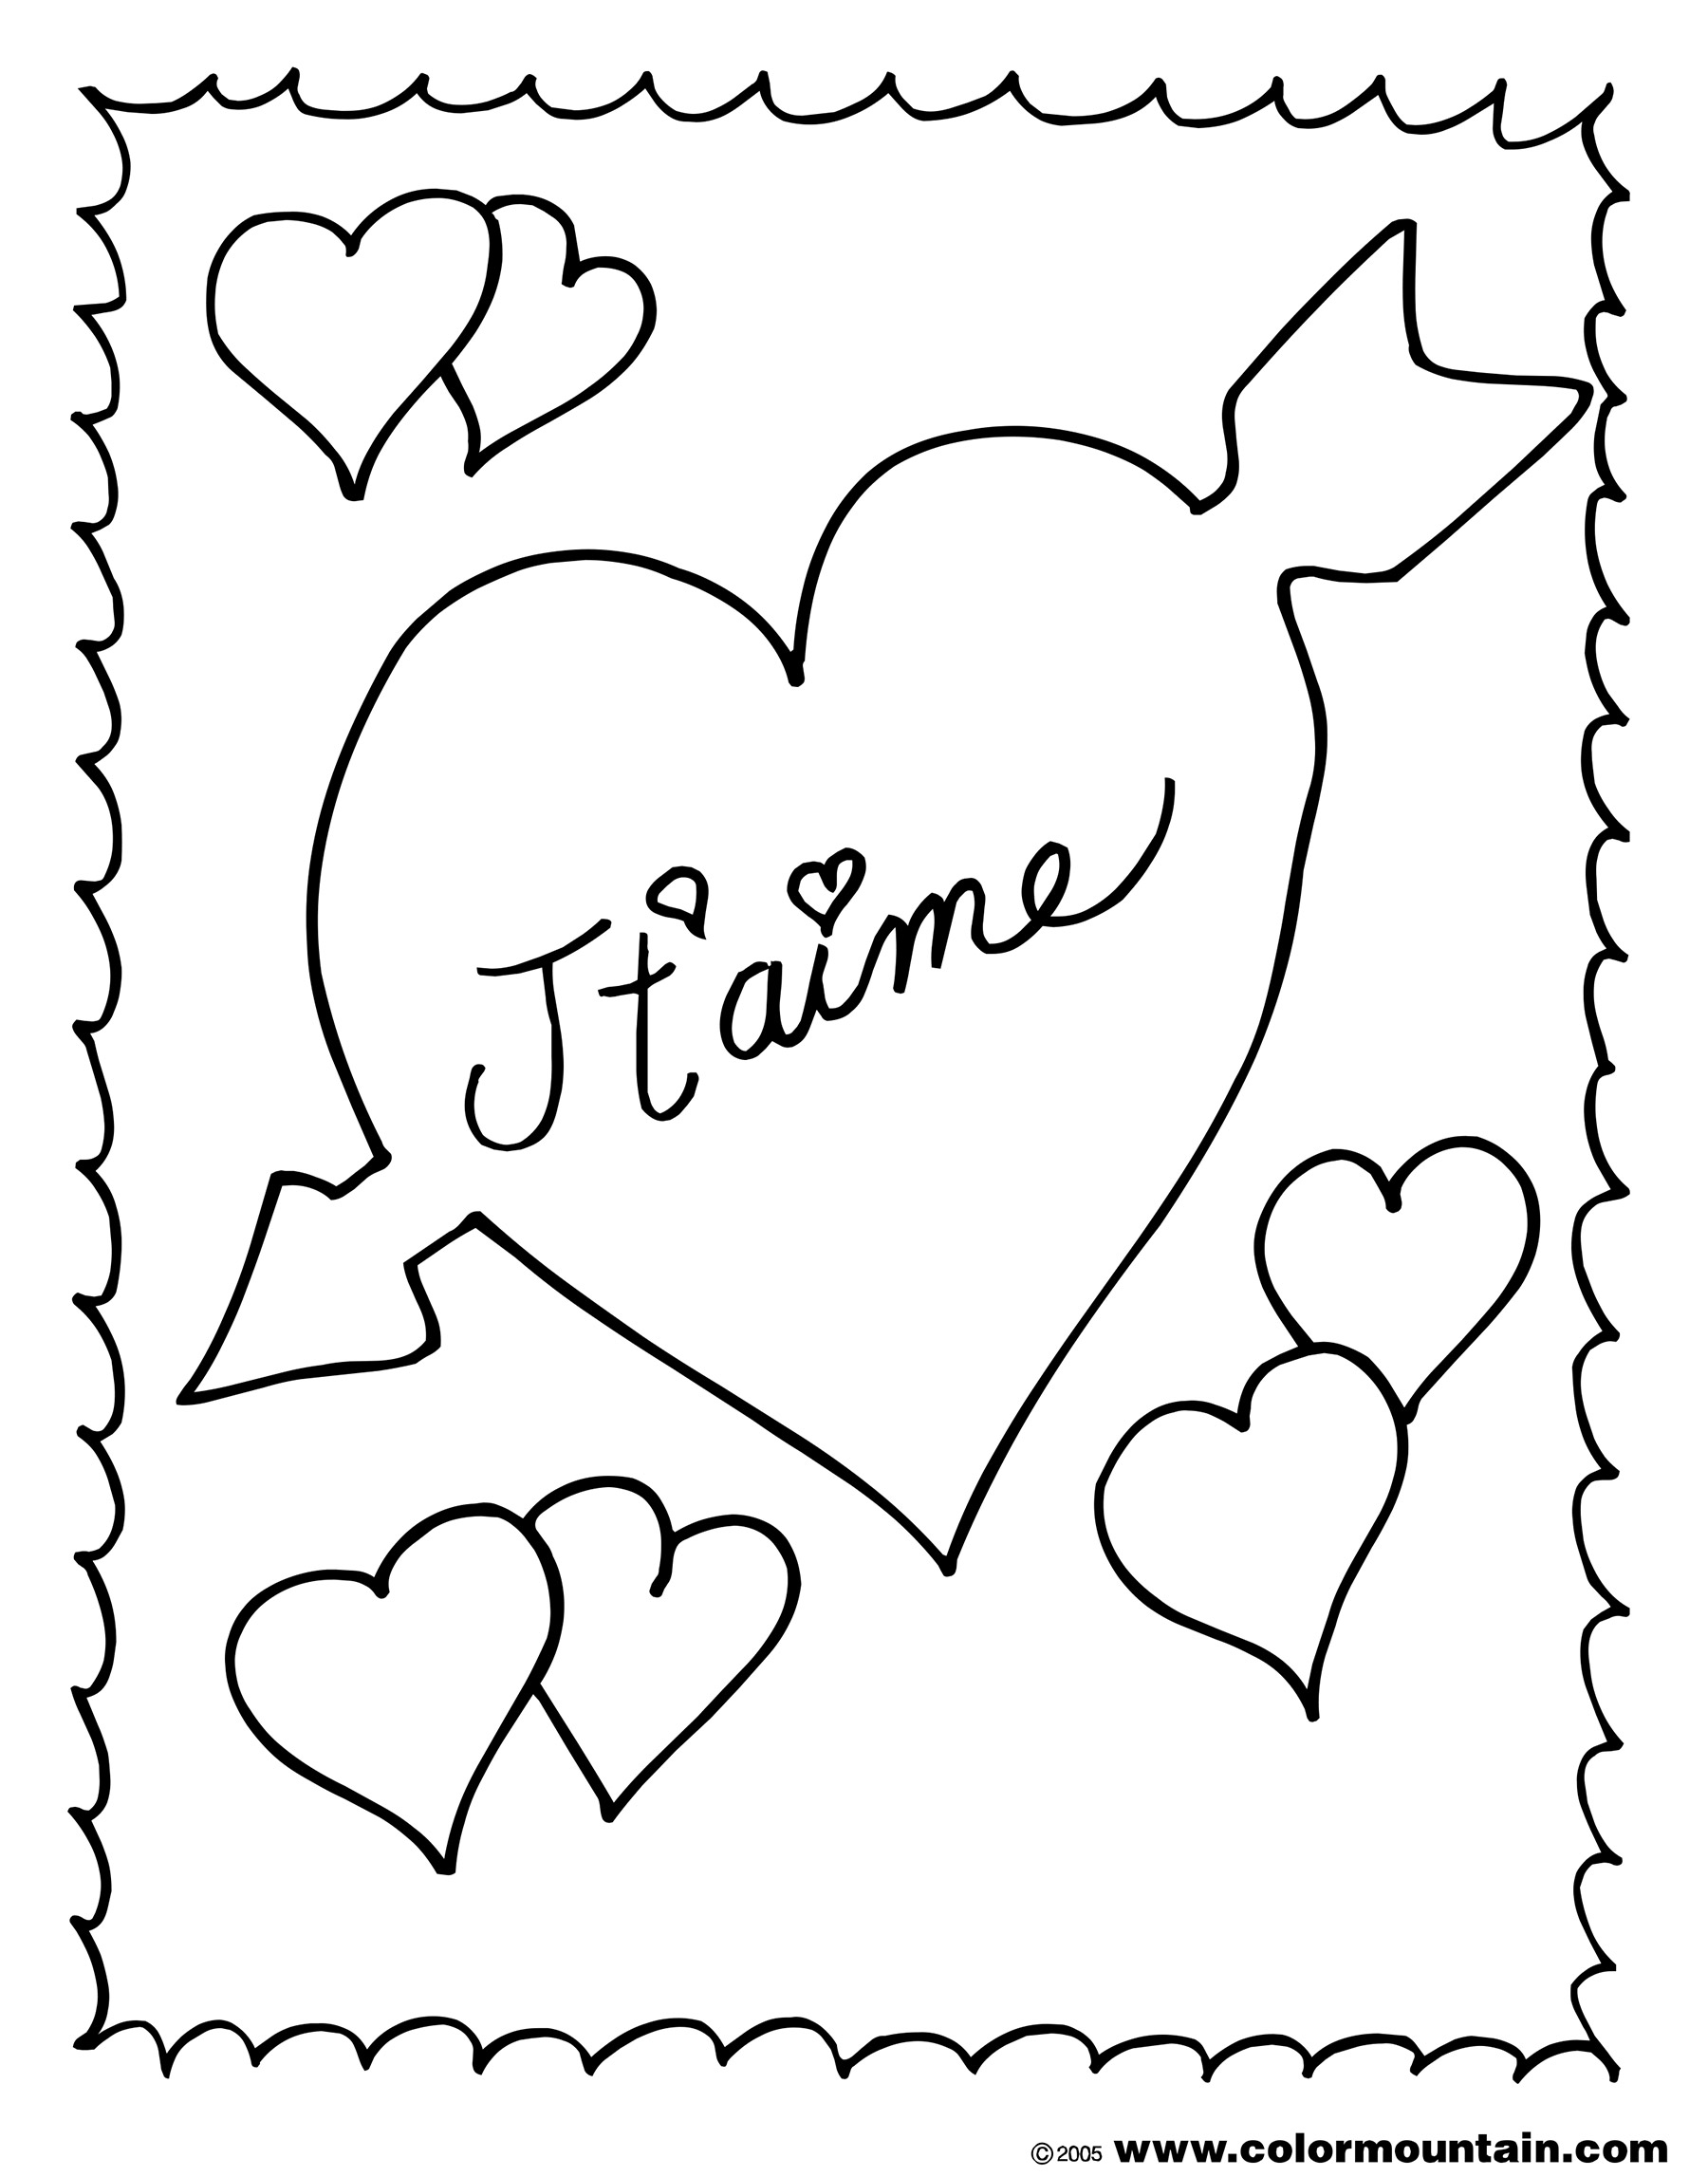 french coloring pages | French coloring, Download French coloring for free 2019